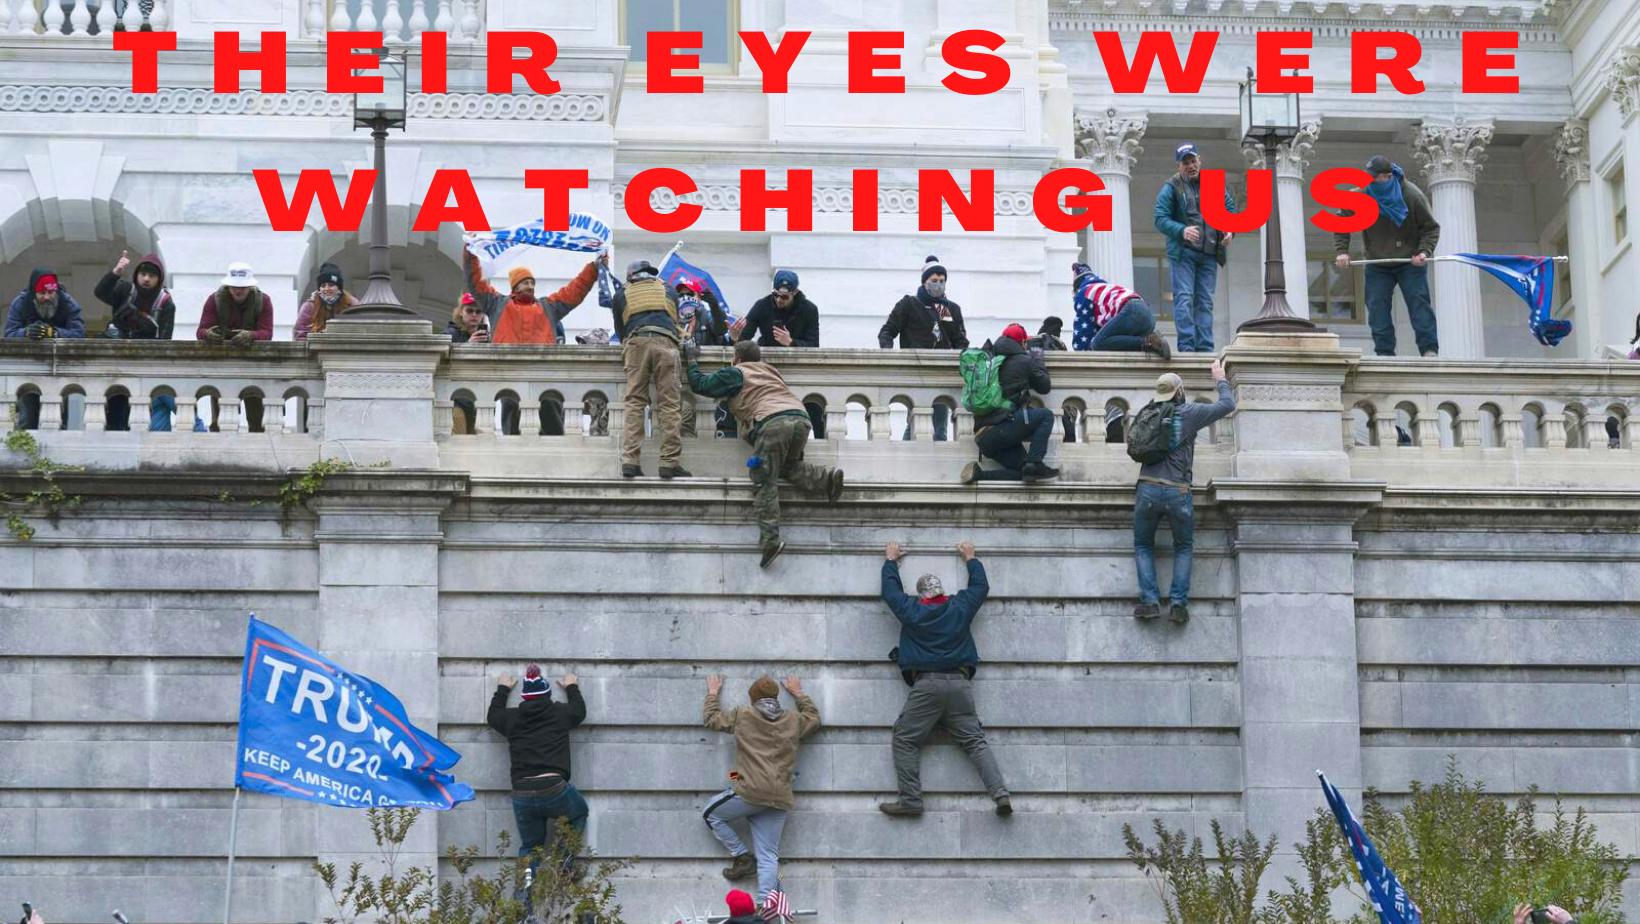 their eyes were watching us